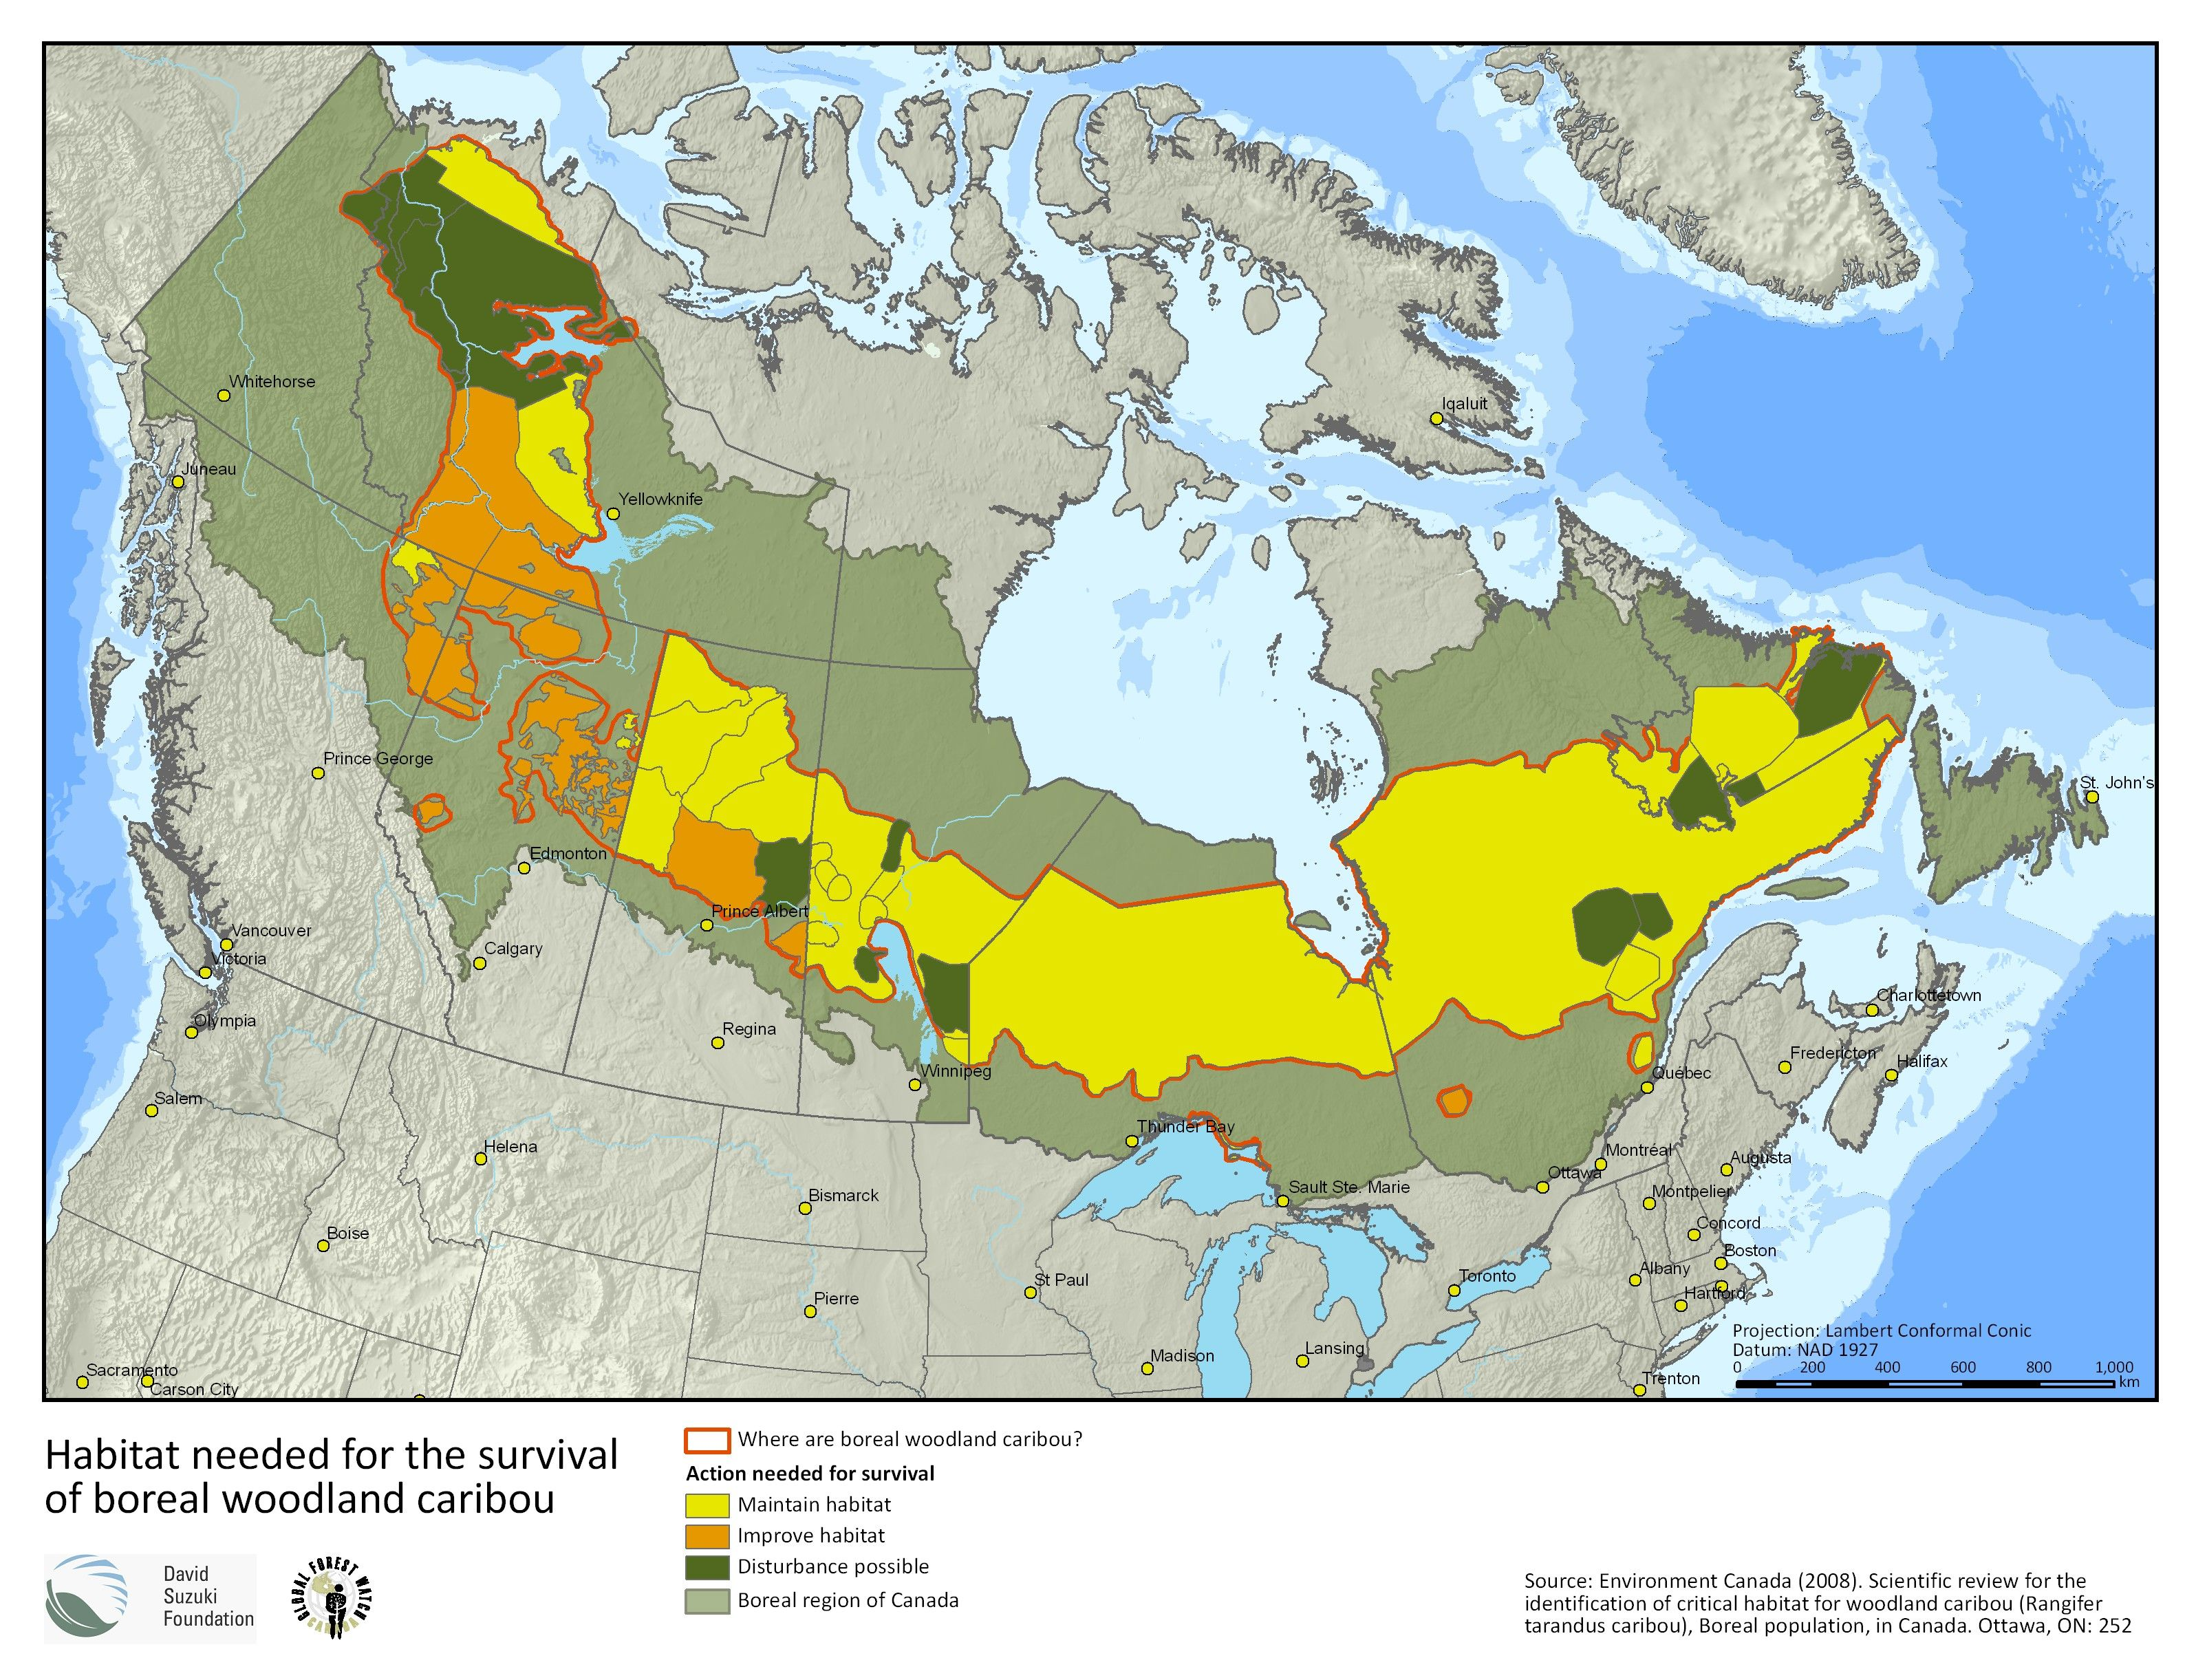 Map Habitat needed for the survival of boreal woodland caribou